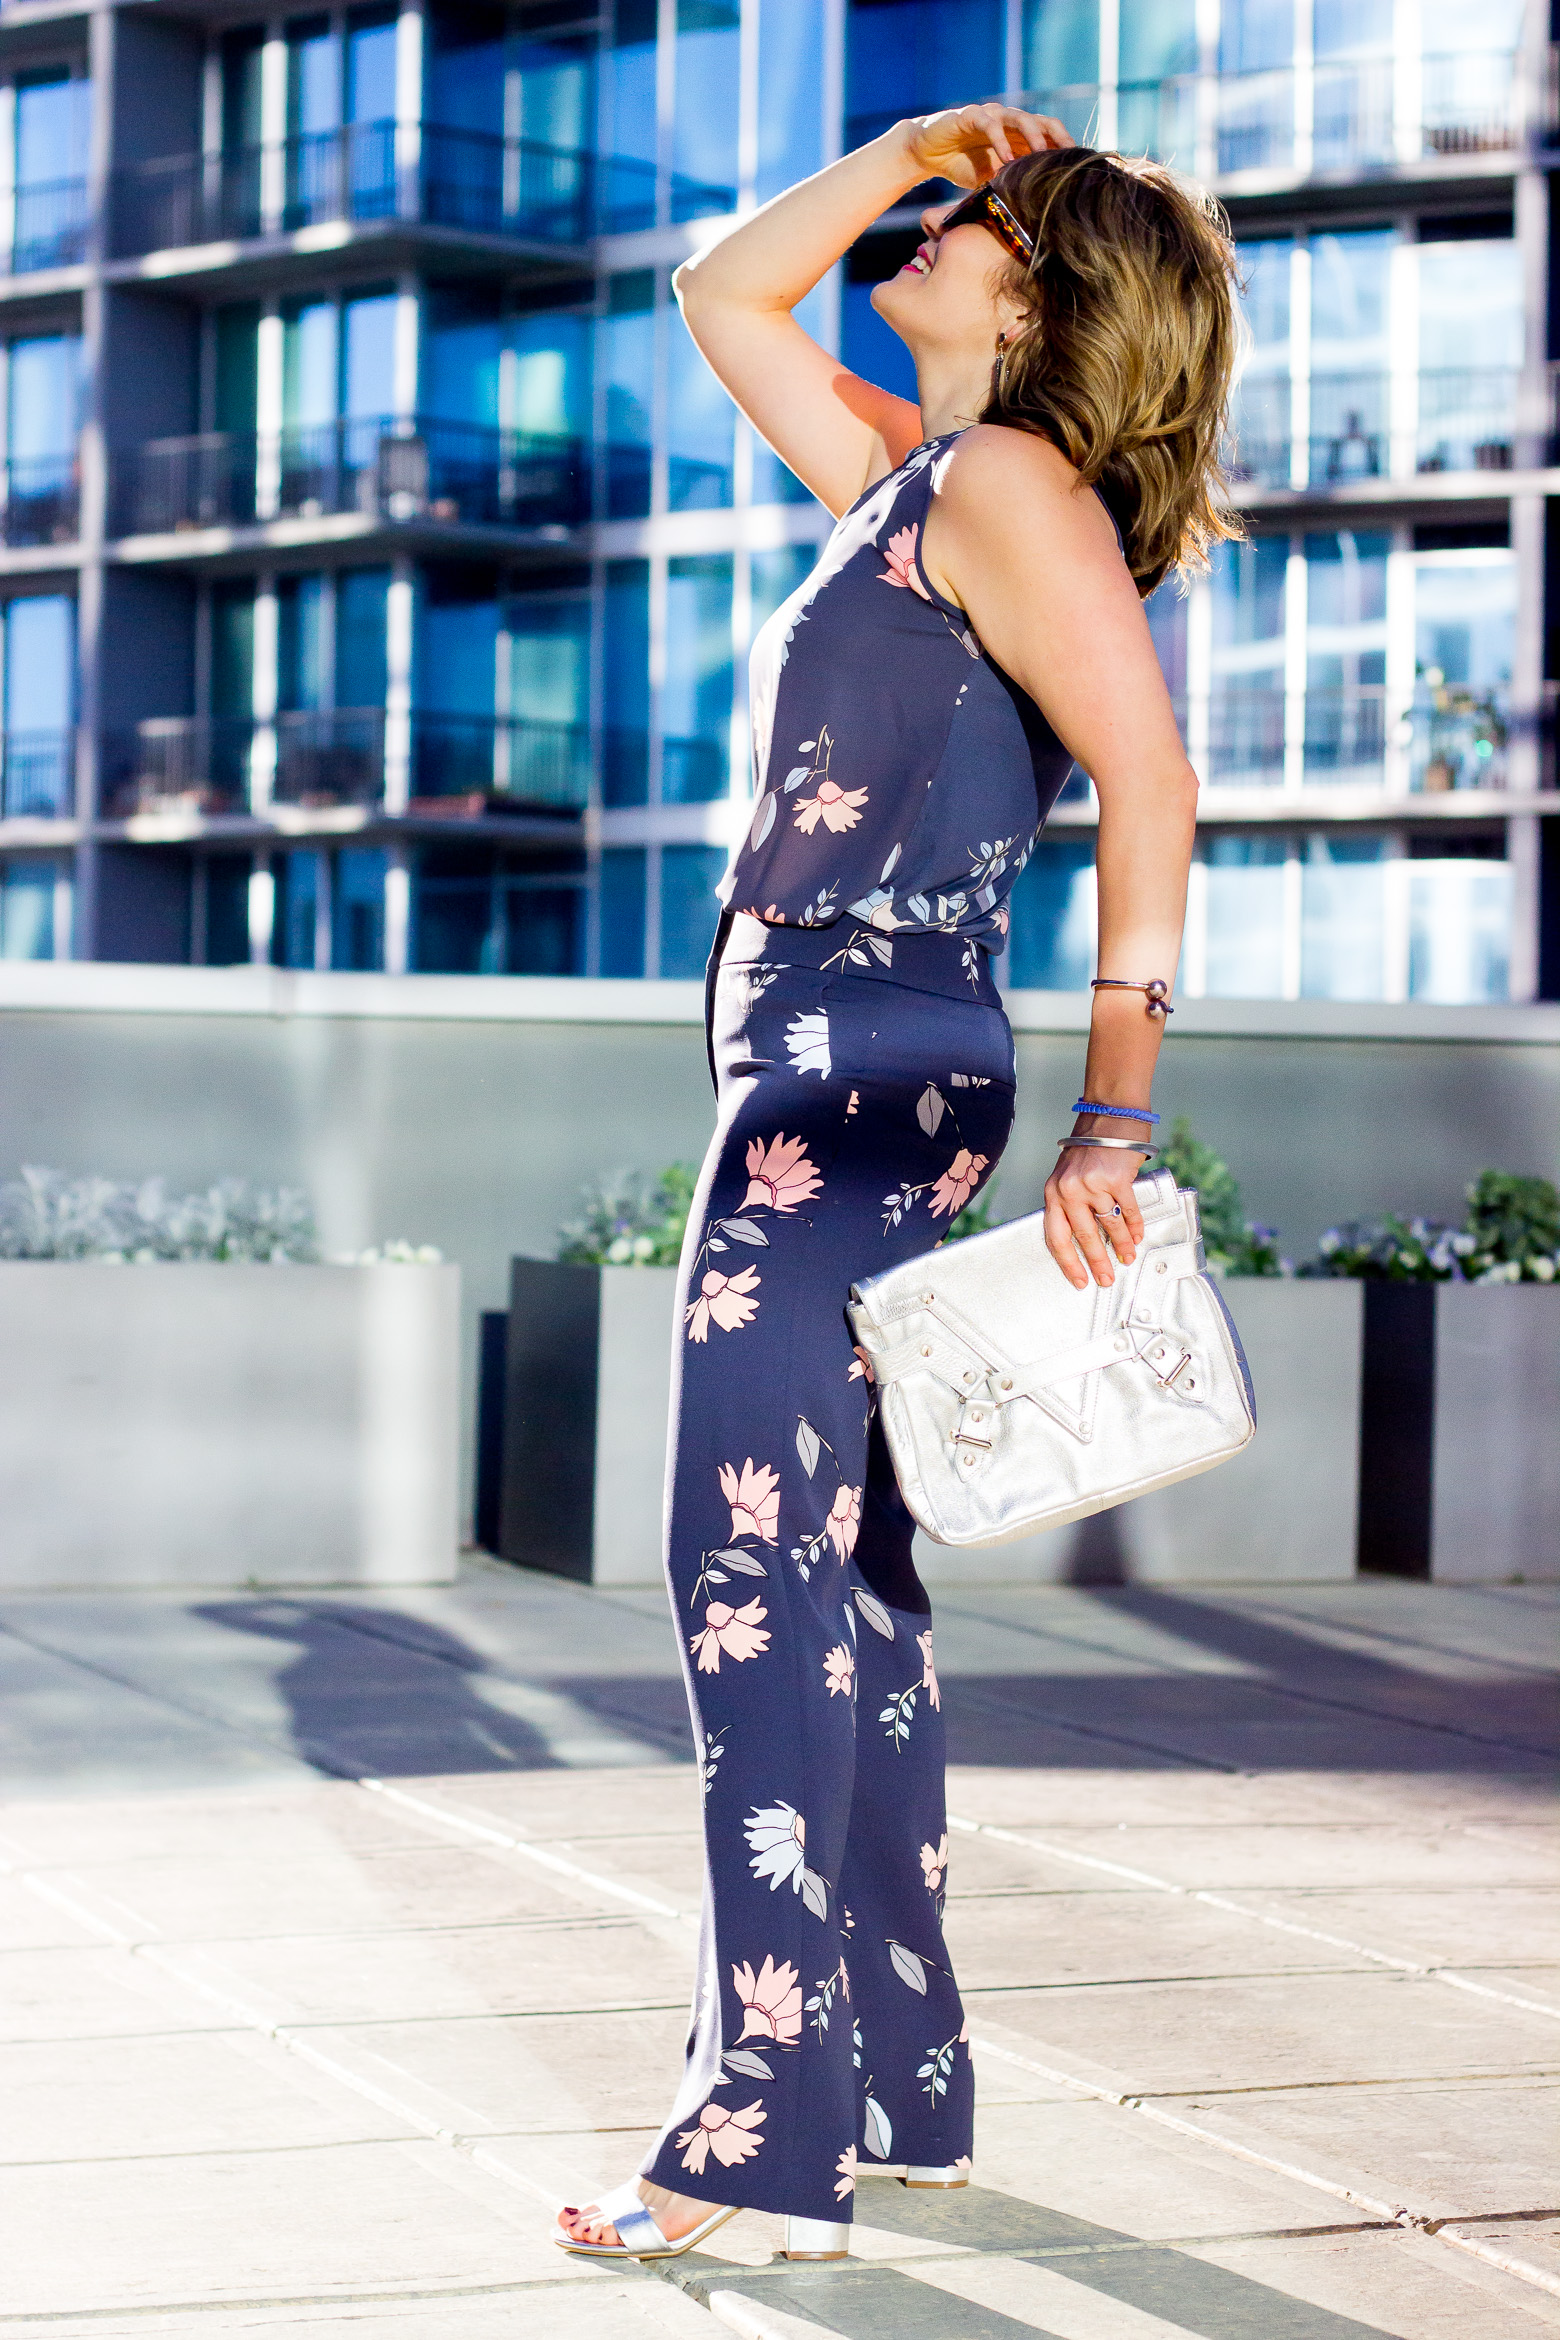 Floral pants for curvy bodies